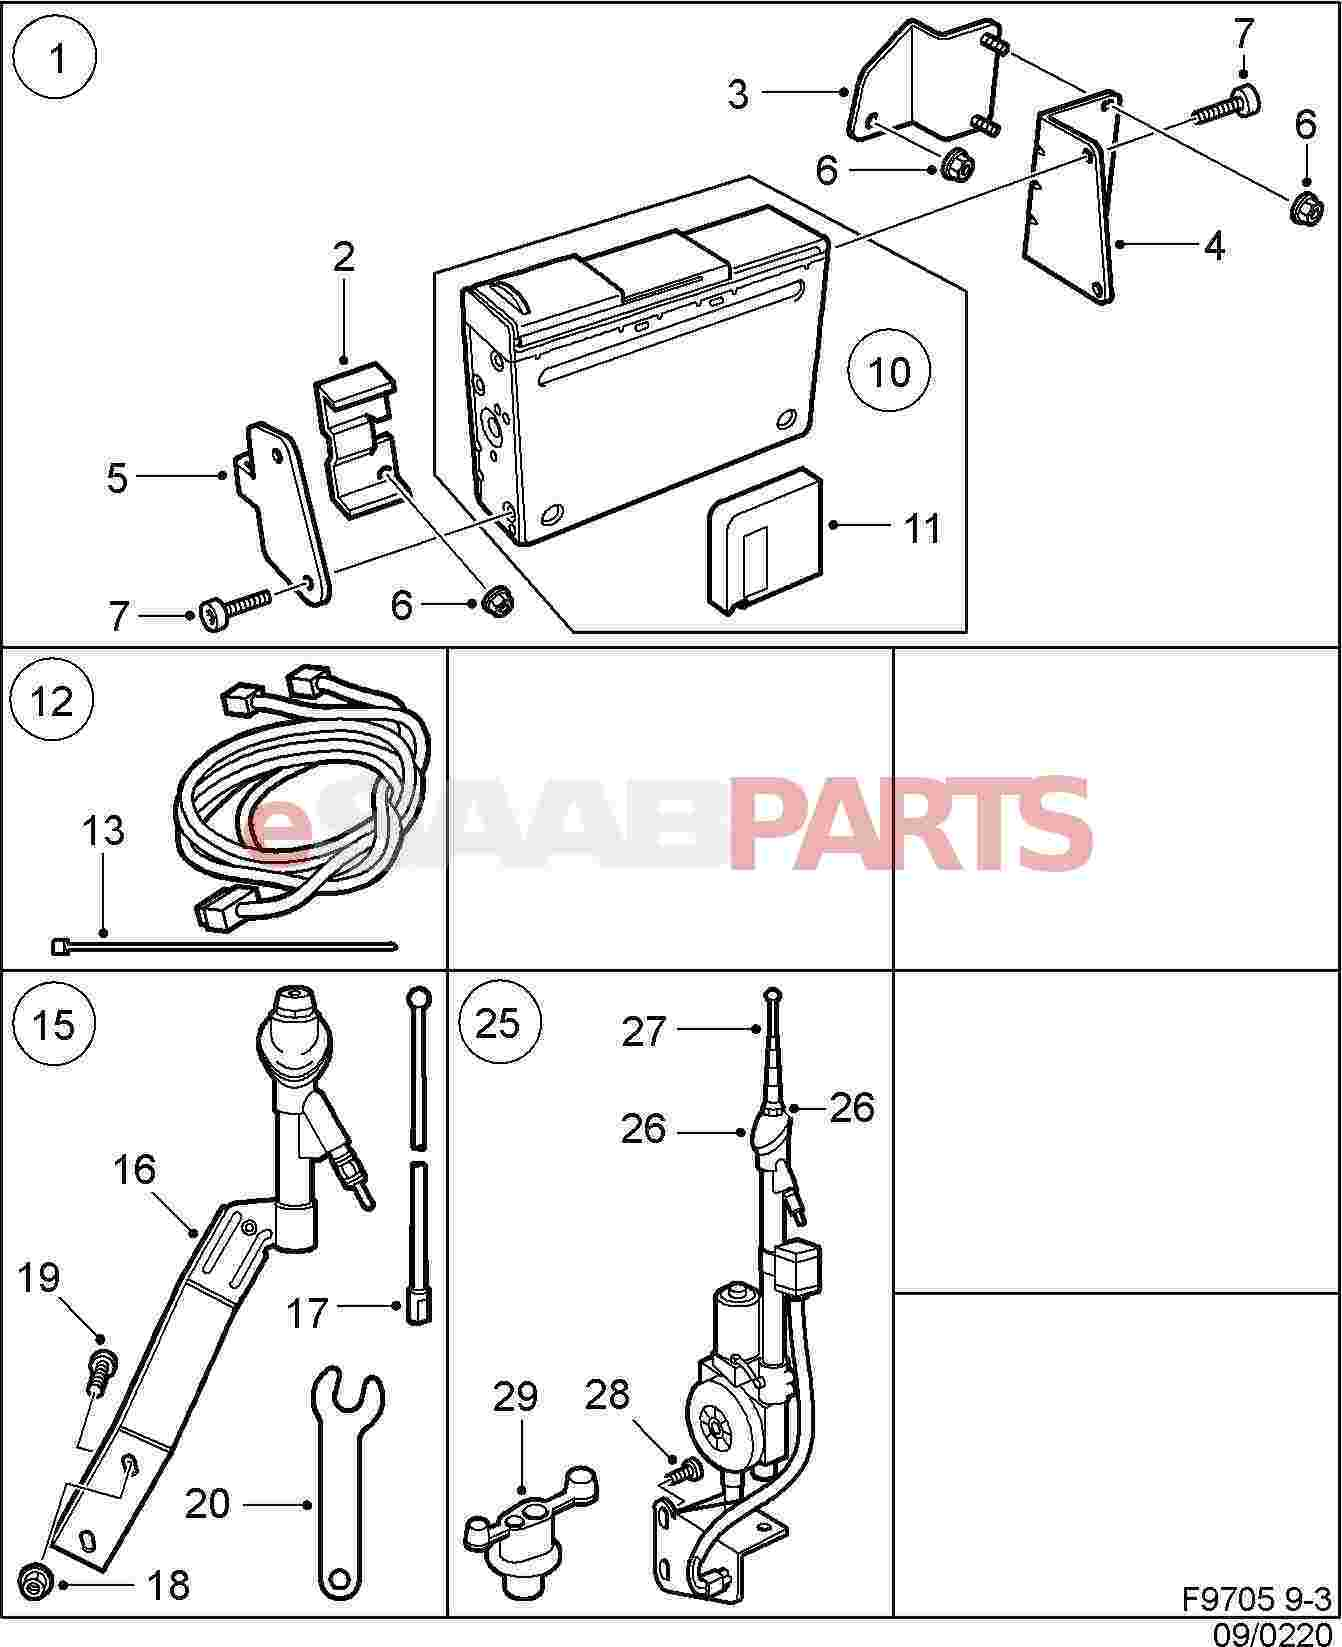 2003 Subaru Forester Drivers Door Parts Diagram in addition B86f32e71f28c8d5132fb78f2ba7e424 together with Honda Accord Ecu Location likewise Index likewise 1998 Mitsubishi Galant Engine Diagram. on honda cr v 2003 radio wiring diagram